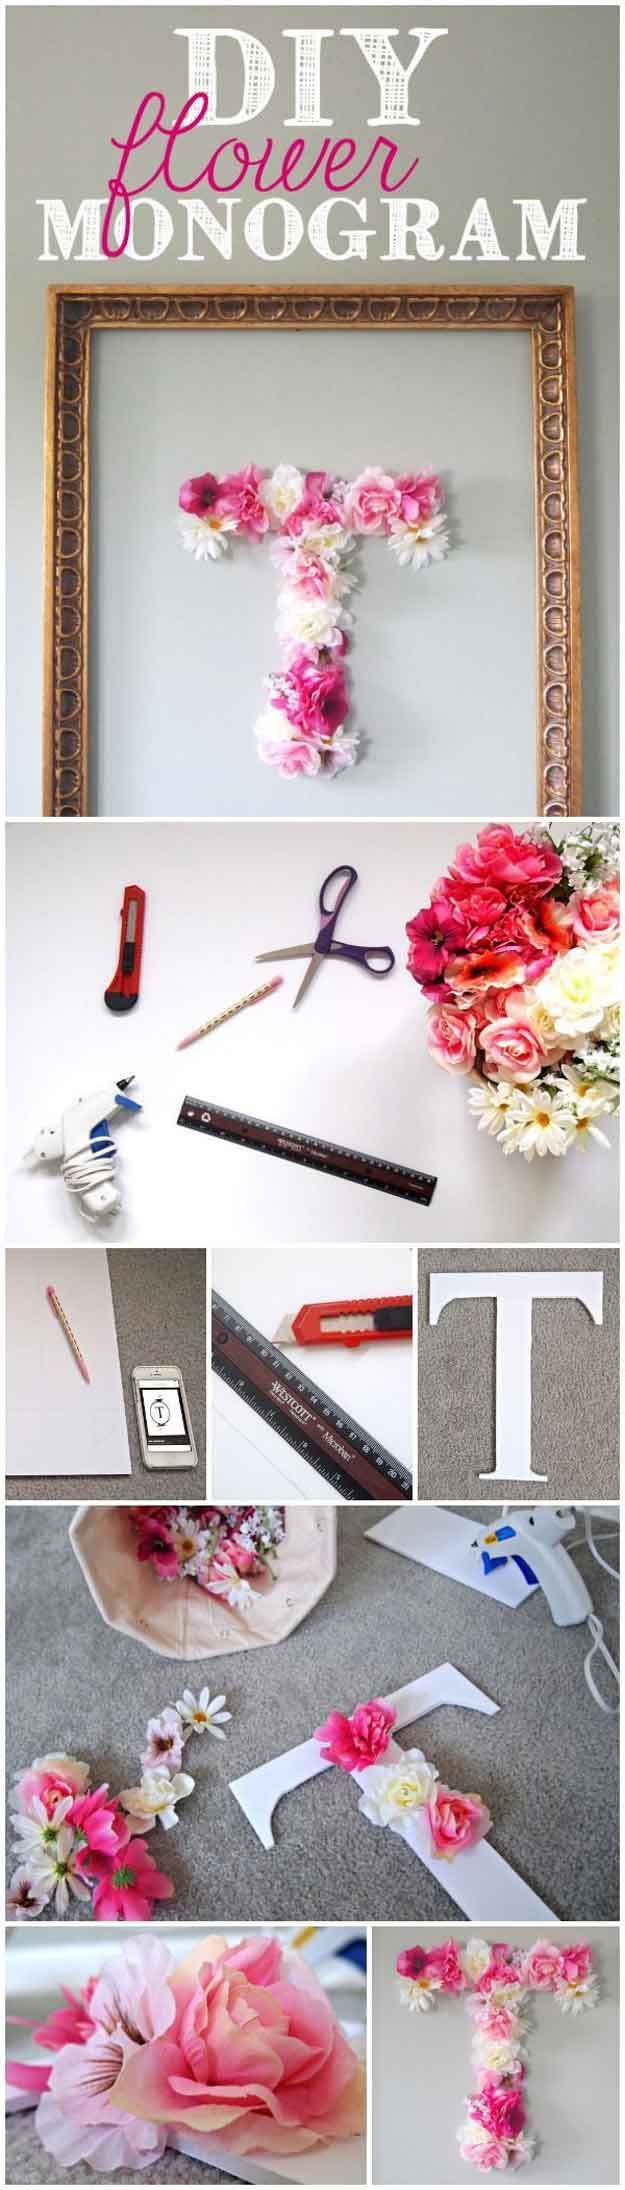 Cool Wall Art Room Decorations for Teen Bedroom | DIY Flower Monogram by  DIY Ready at